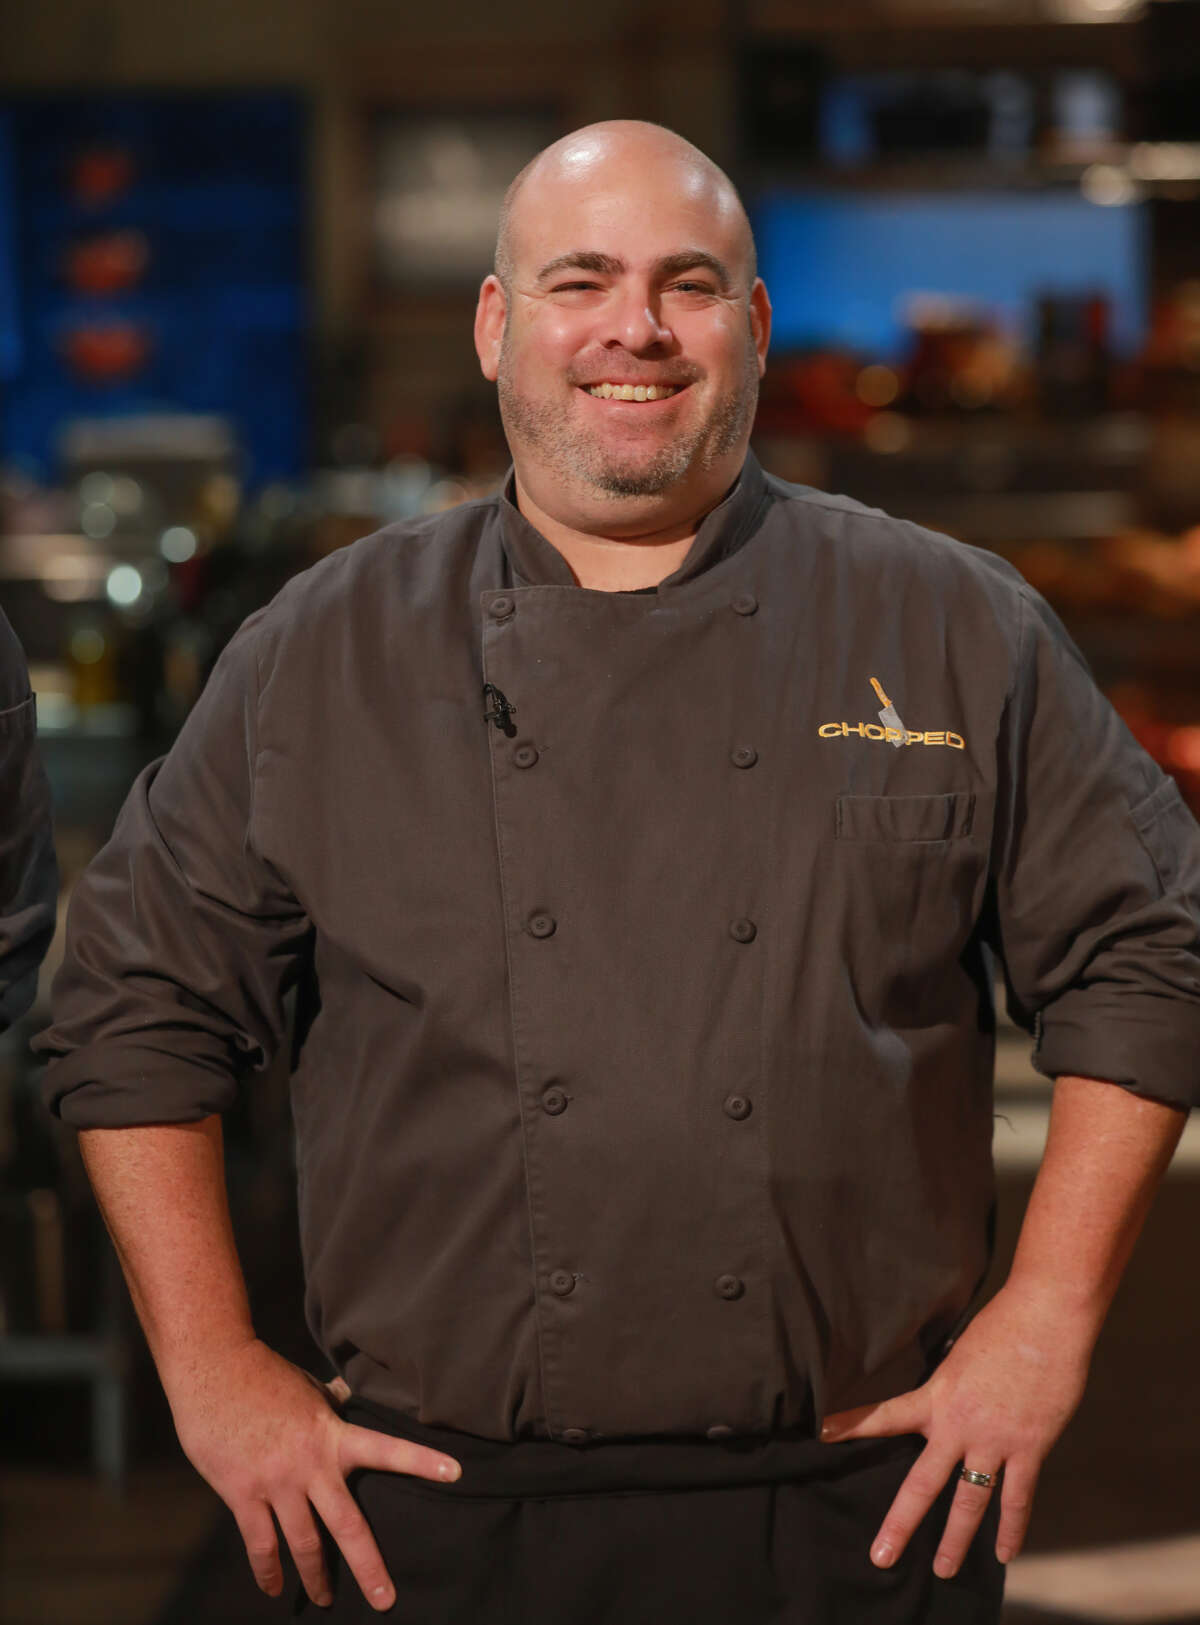 Chef Matt Storch of Match and Match Burger Lobster competed in Food Network's